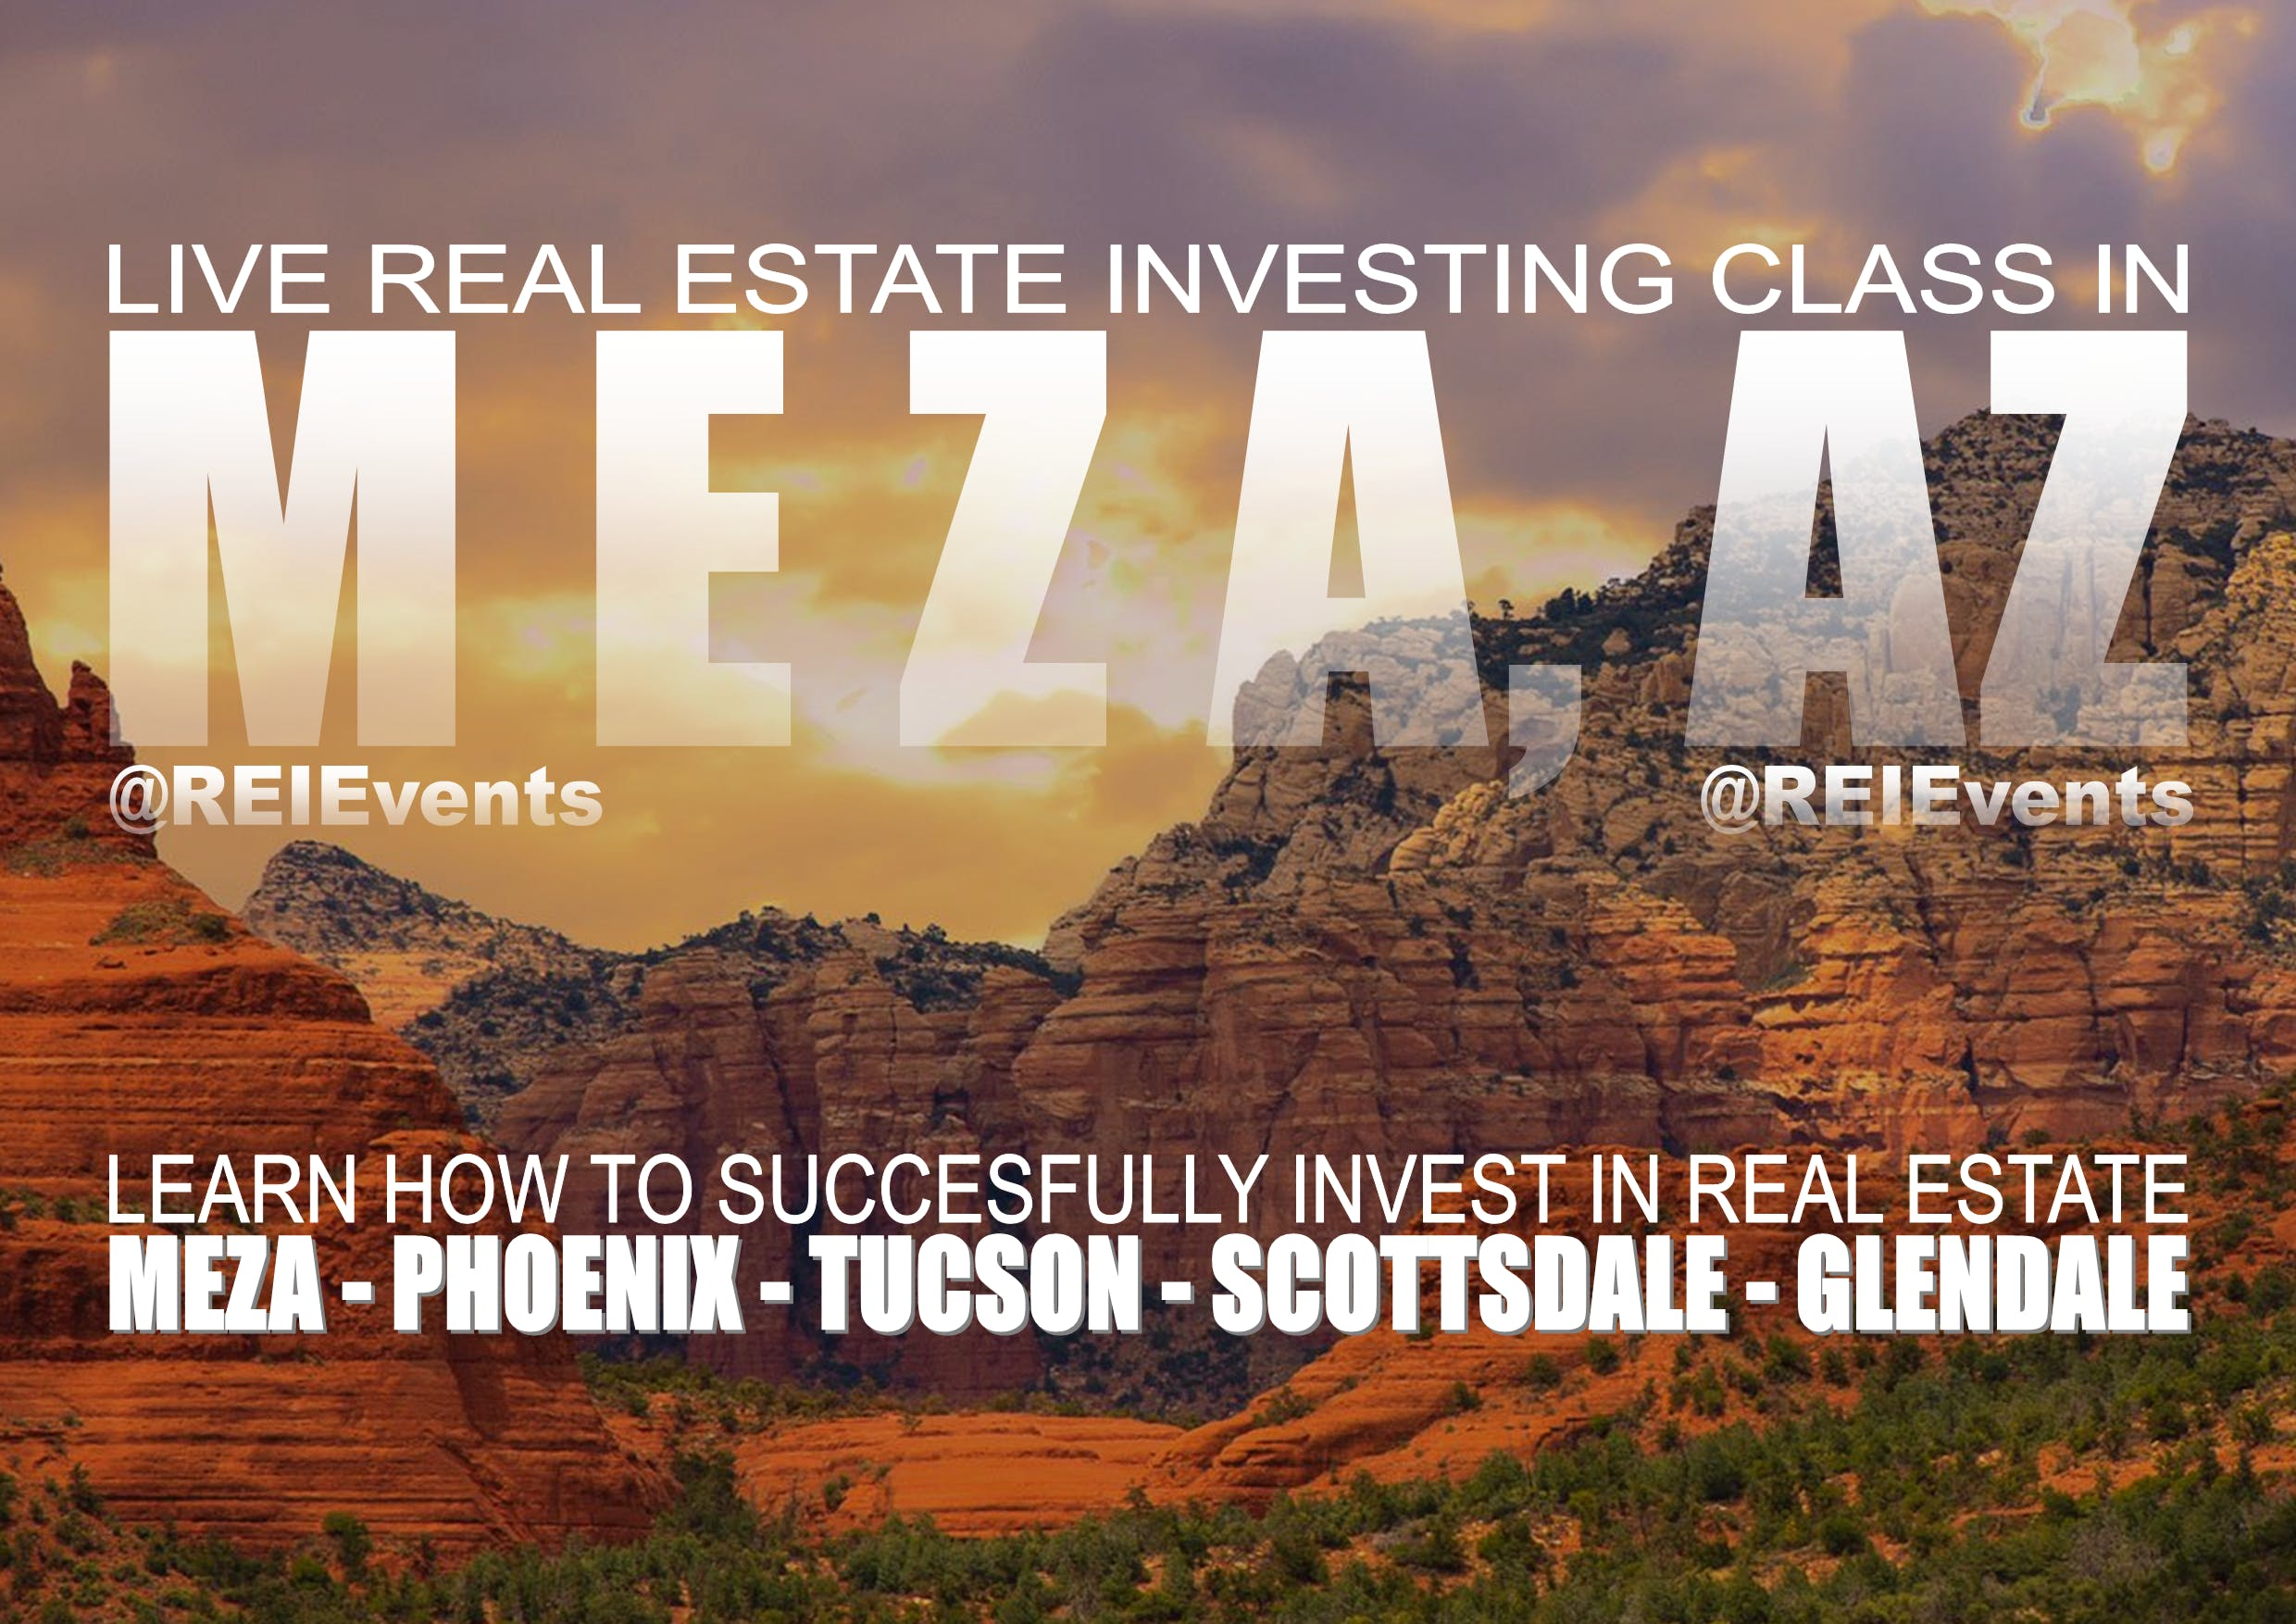 Arizona Real Estate Investing LIVE Orientation - Mesa Arizona